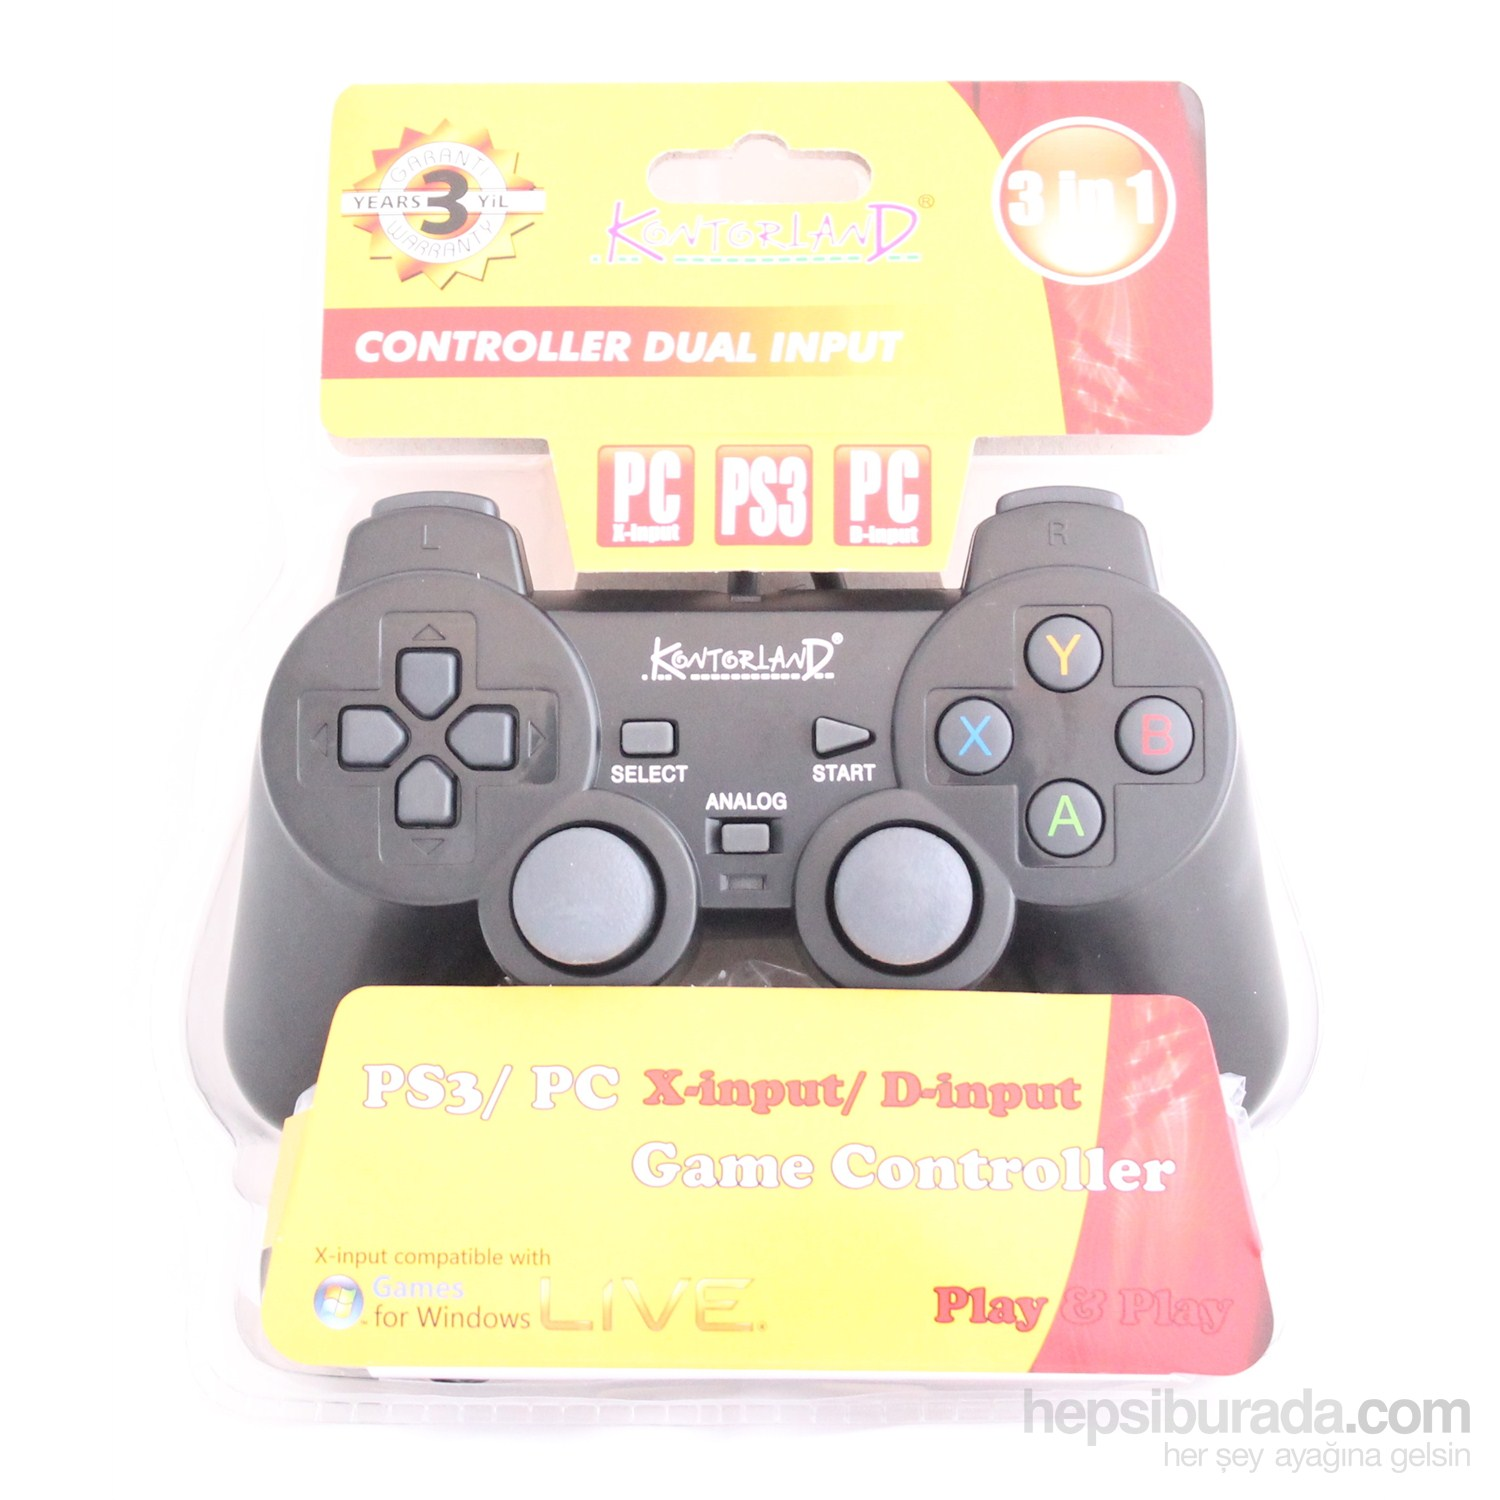 Kontorland PS3/PC (X-input/D-input) Analog Gamepad